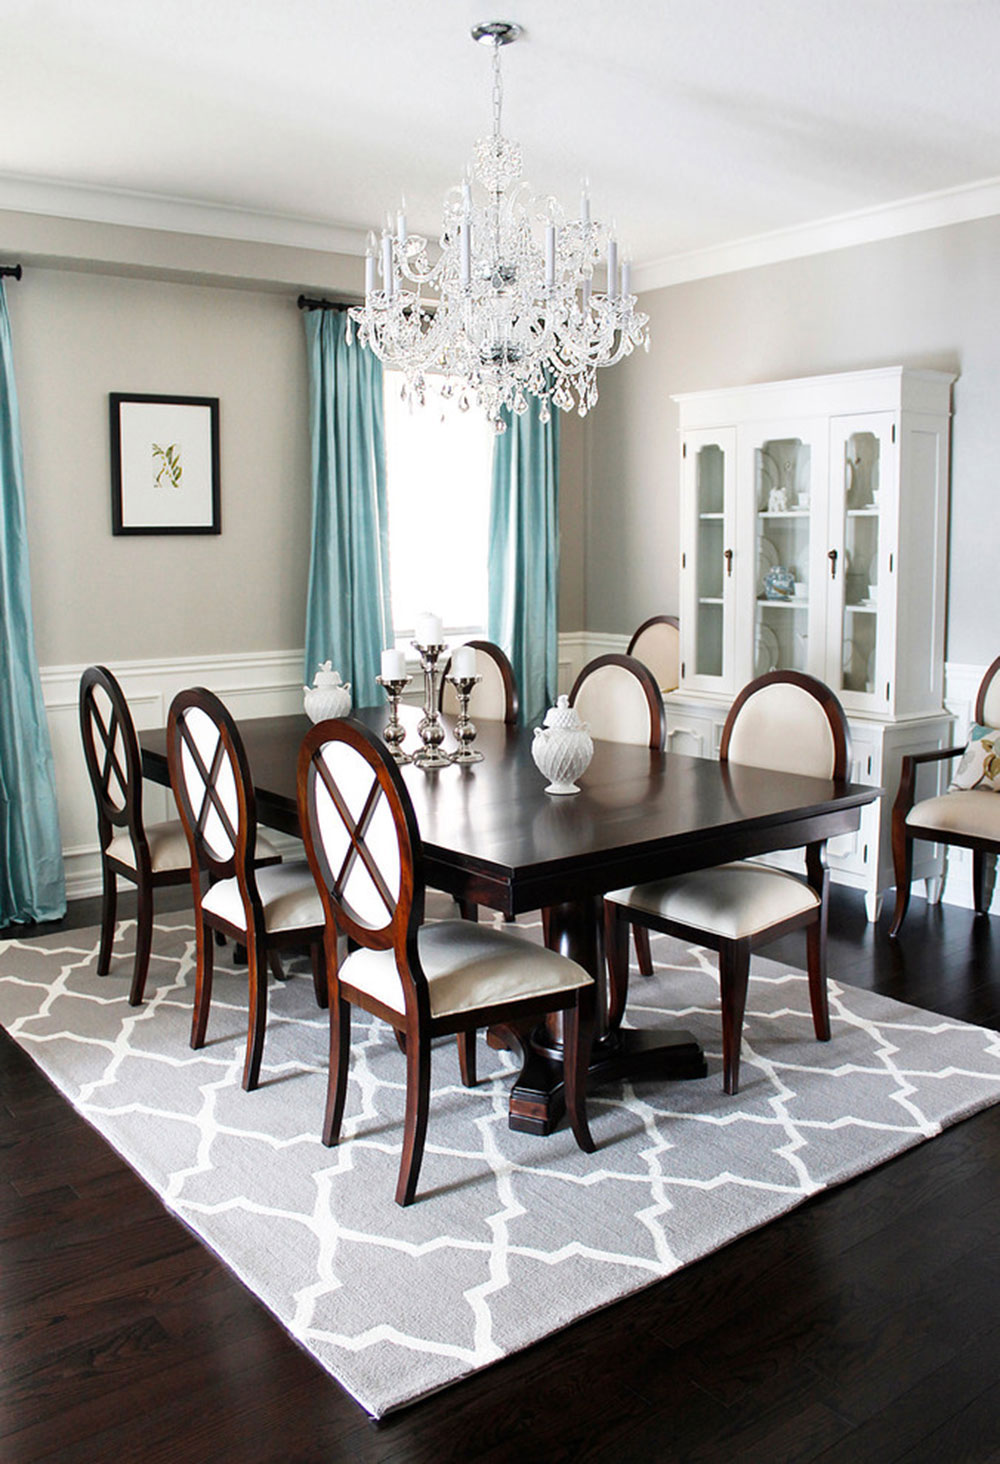 Dining room chandeliers traditional style